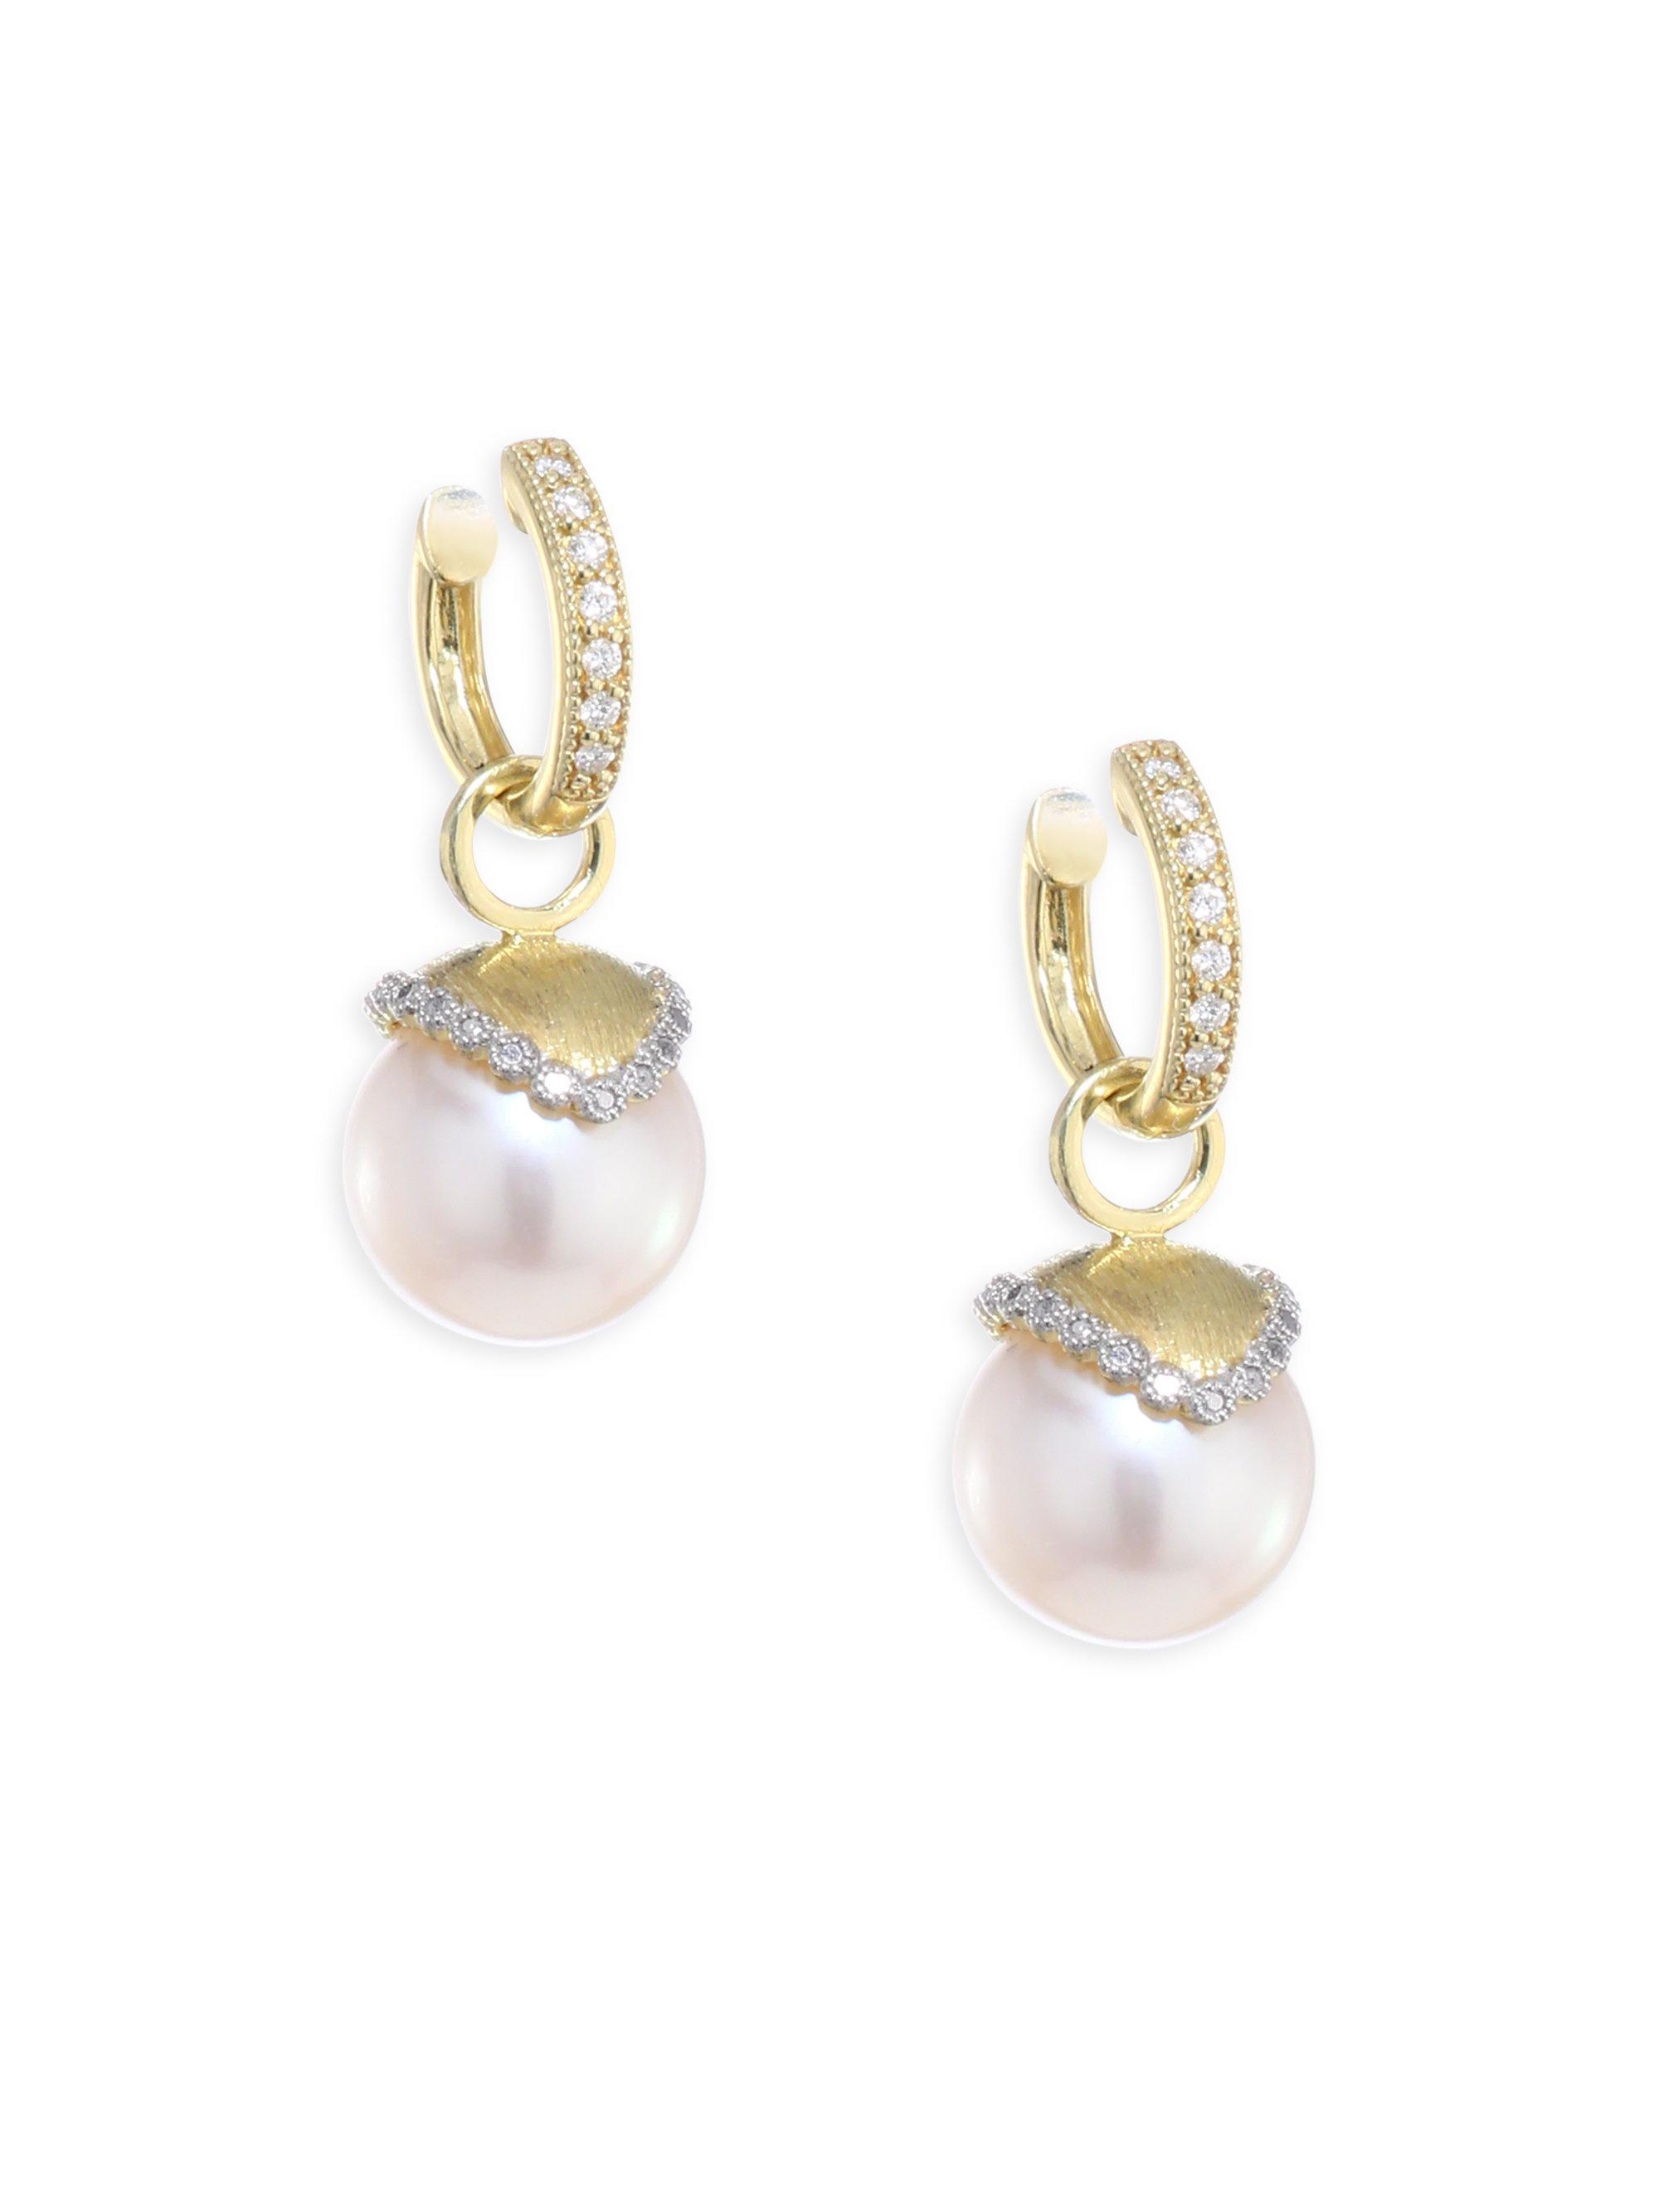 Jude Frances 18K Provence Pearl Drop Earrings HTMiPXnTV